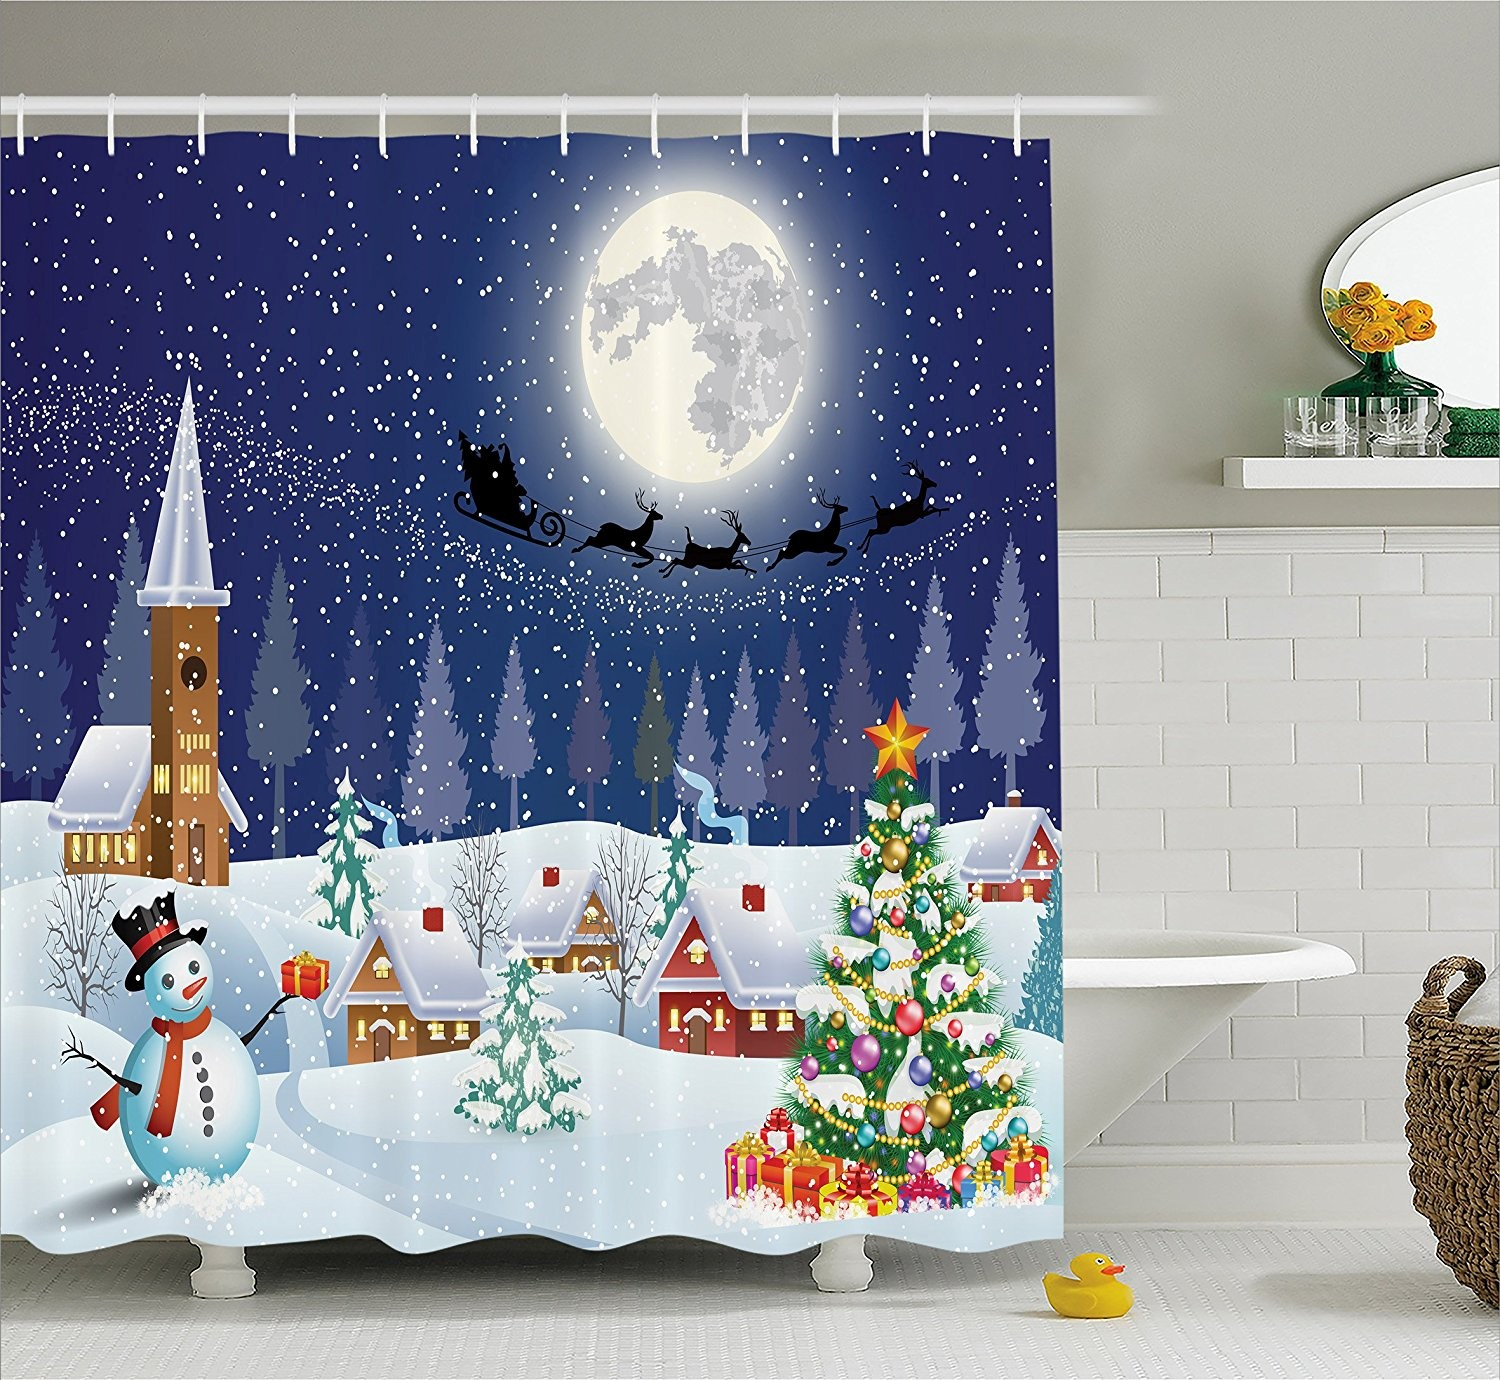 Best Of Christmas Bathroom Sets Online